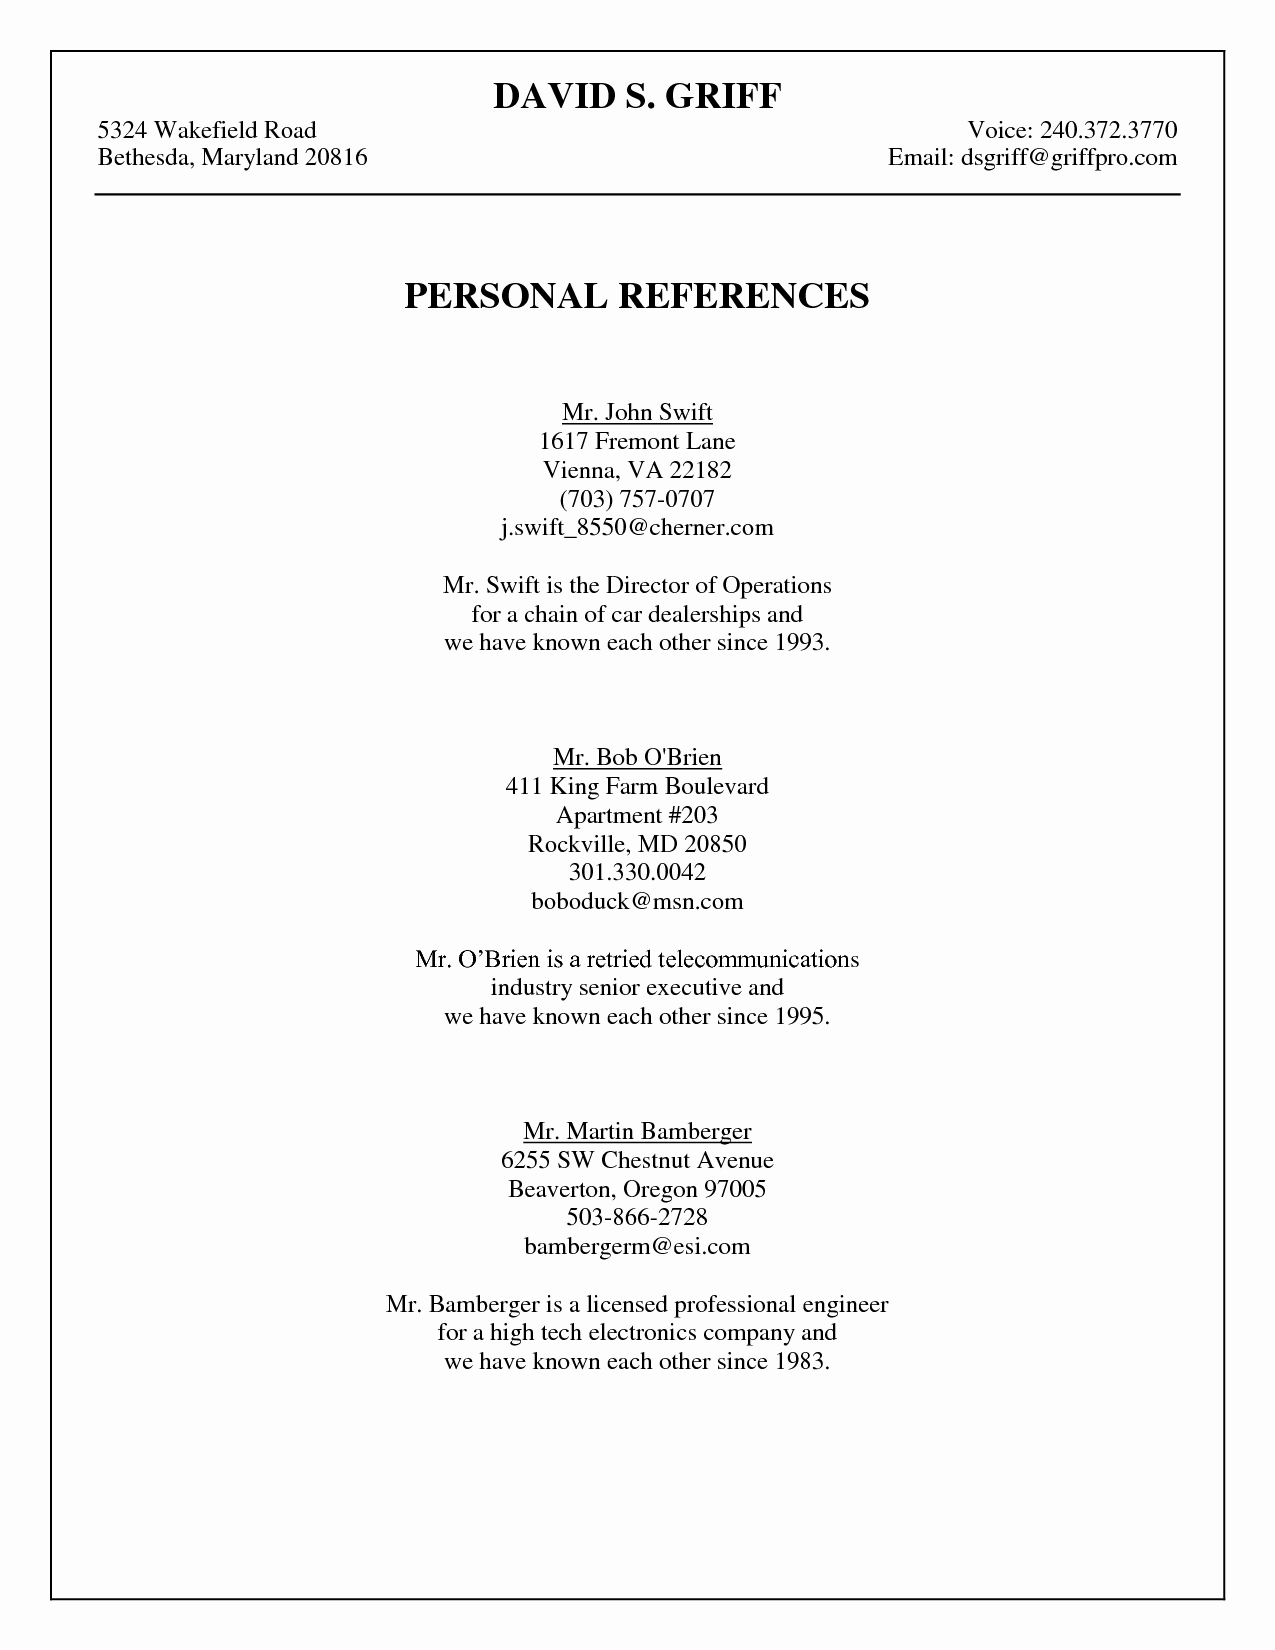 List Of Personal References Template Best Of Personal Reference List Template Portablegasgrillweber